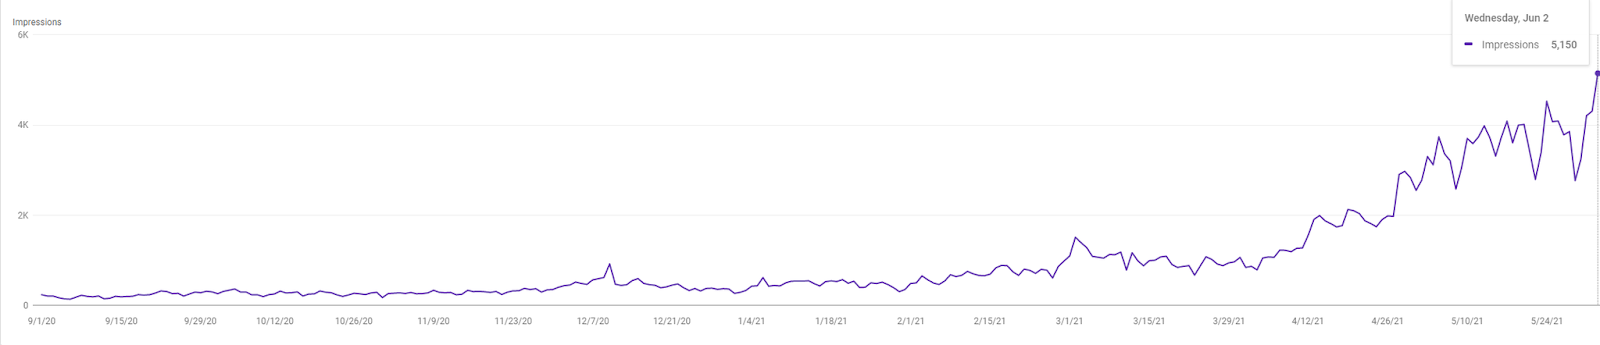 devseg's client search console impressions performance by search engine optimization seo as a case study proof